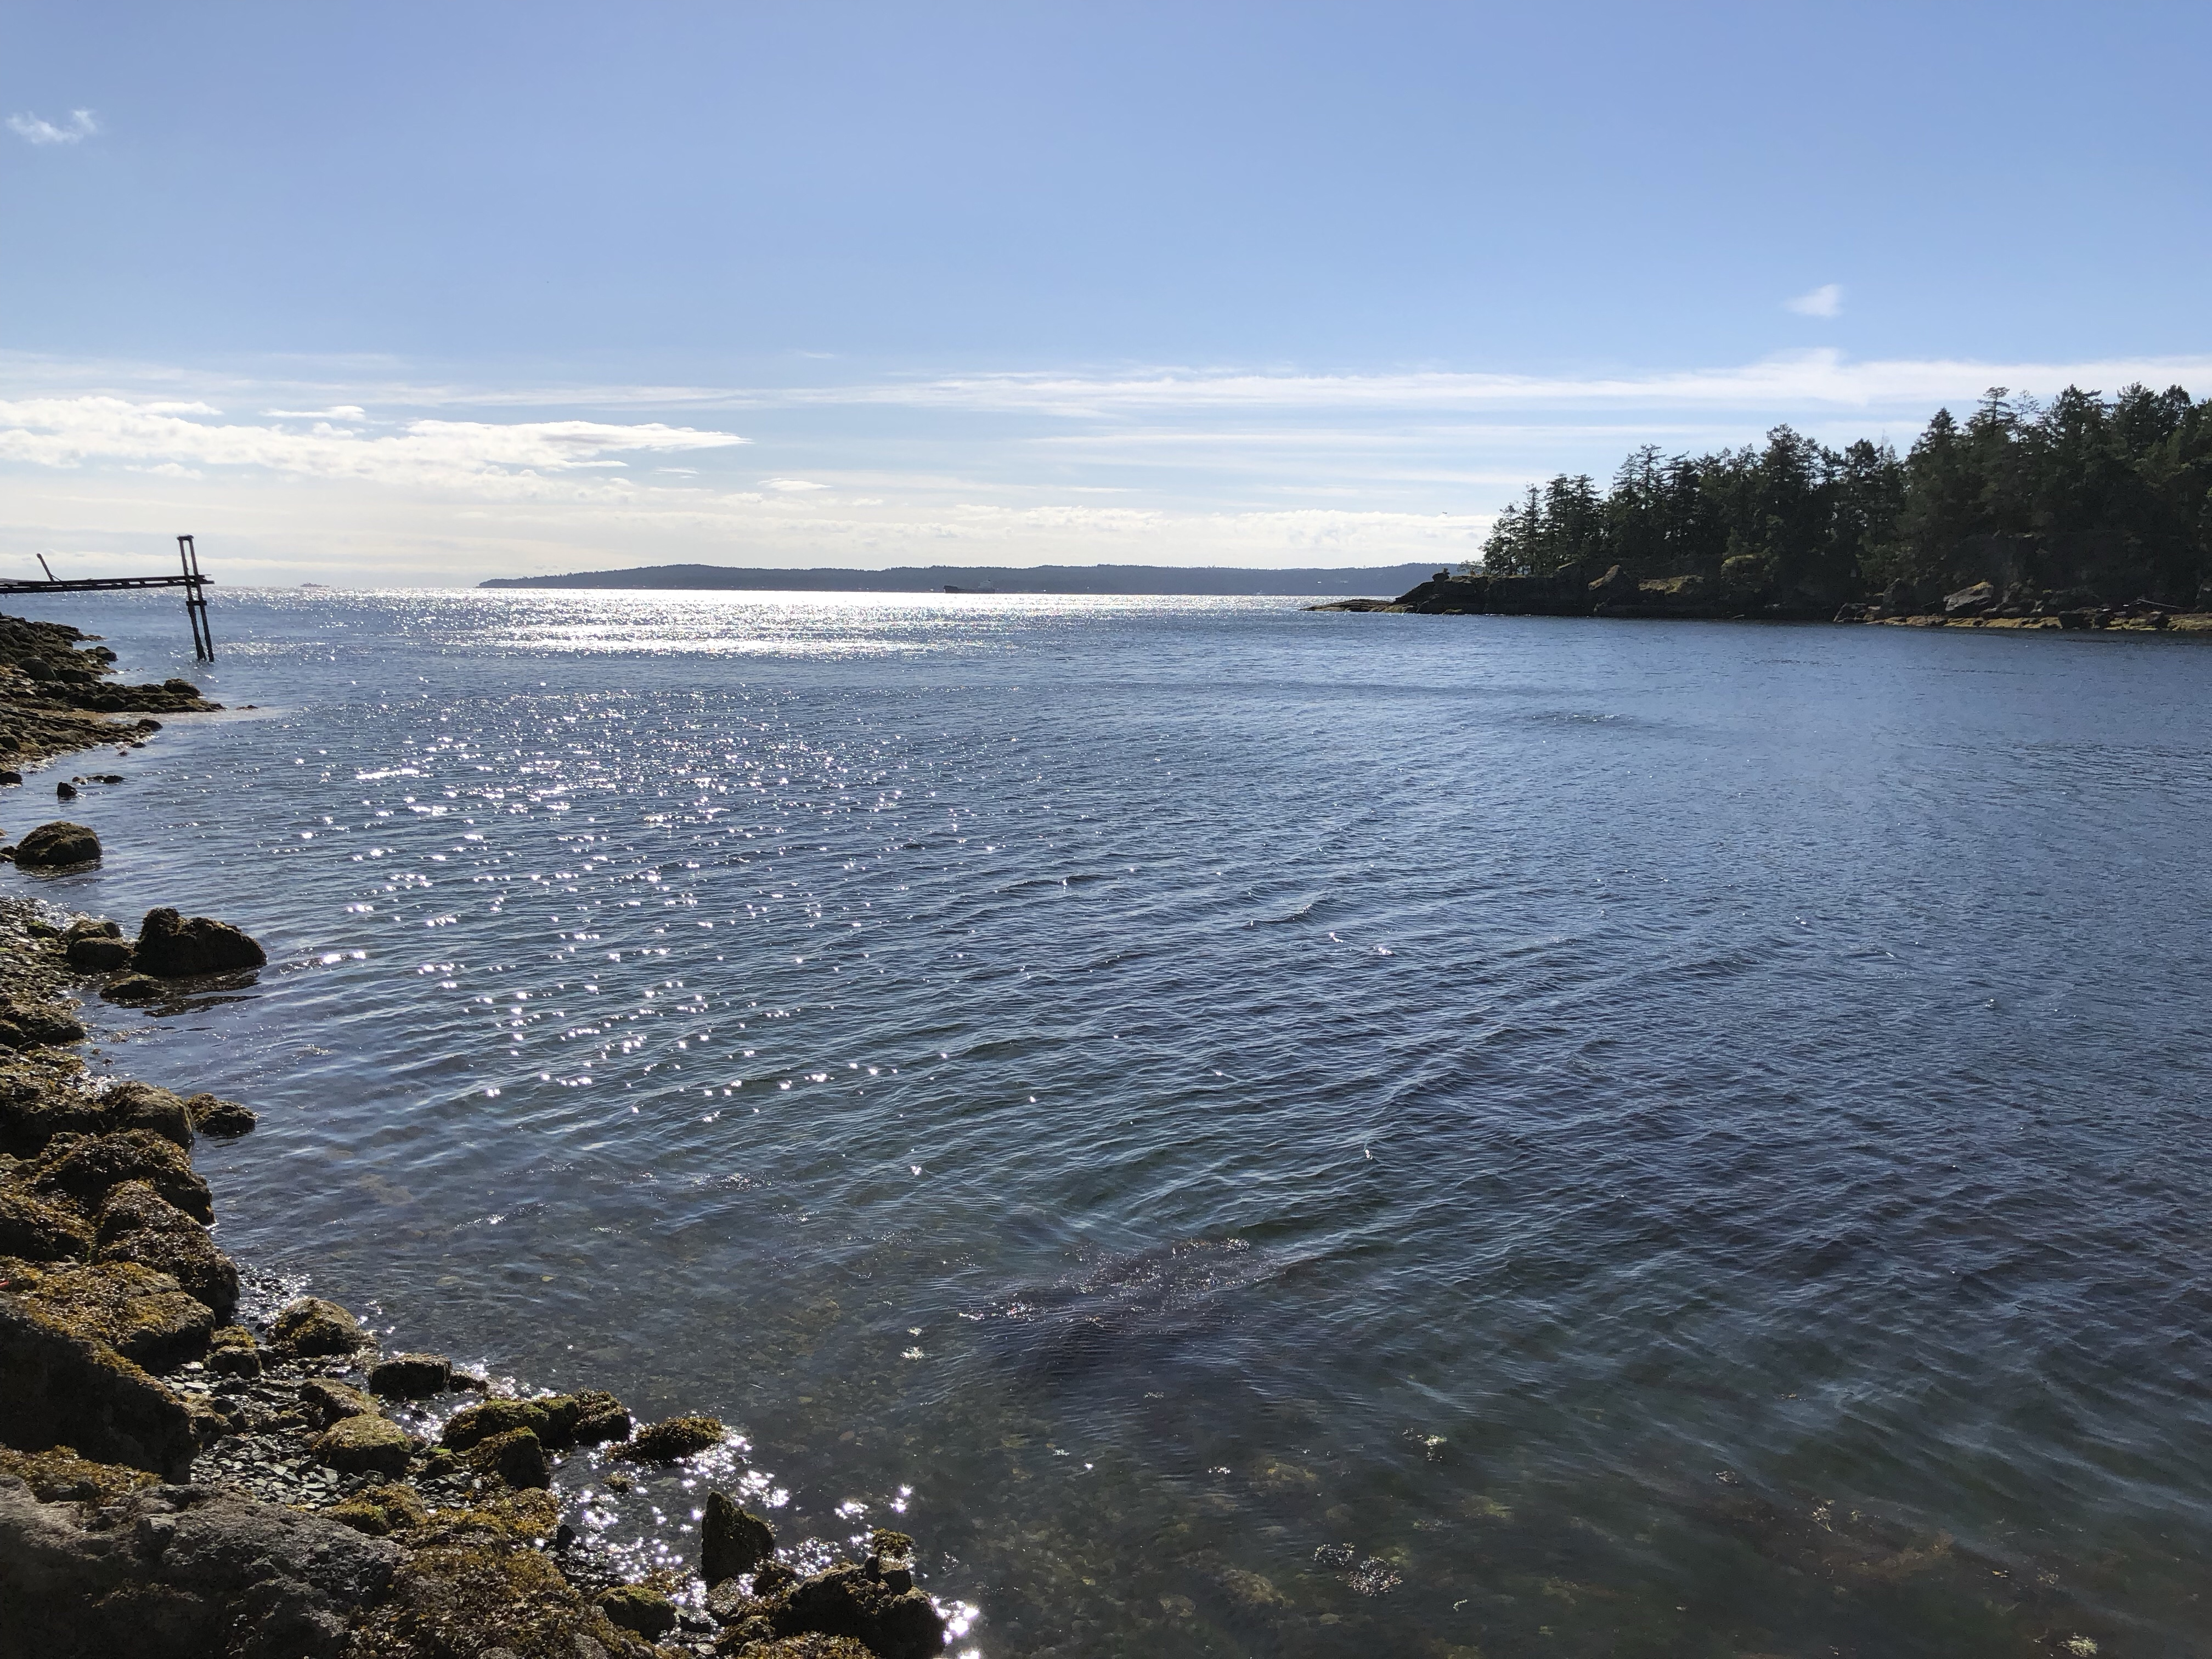 The view looking out towards Entrance Island and Vancouver from Stephenson Point in Departure Bay